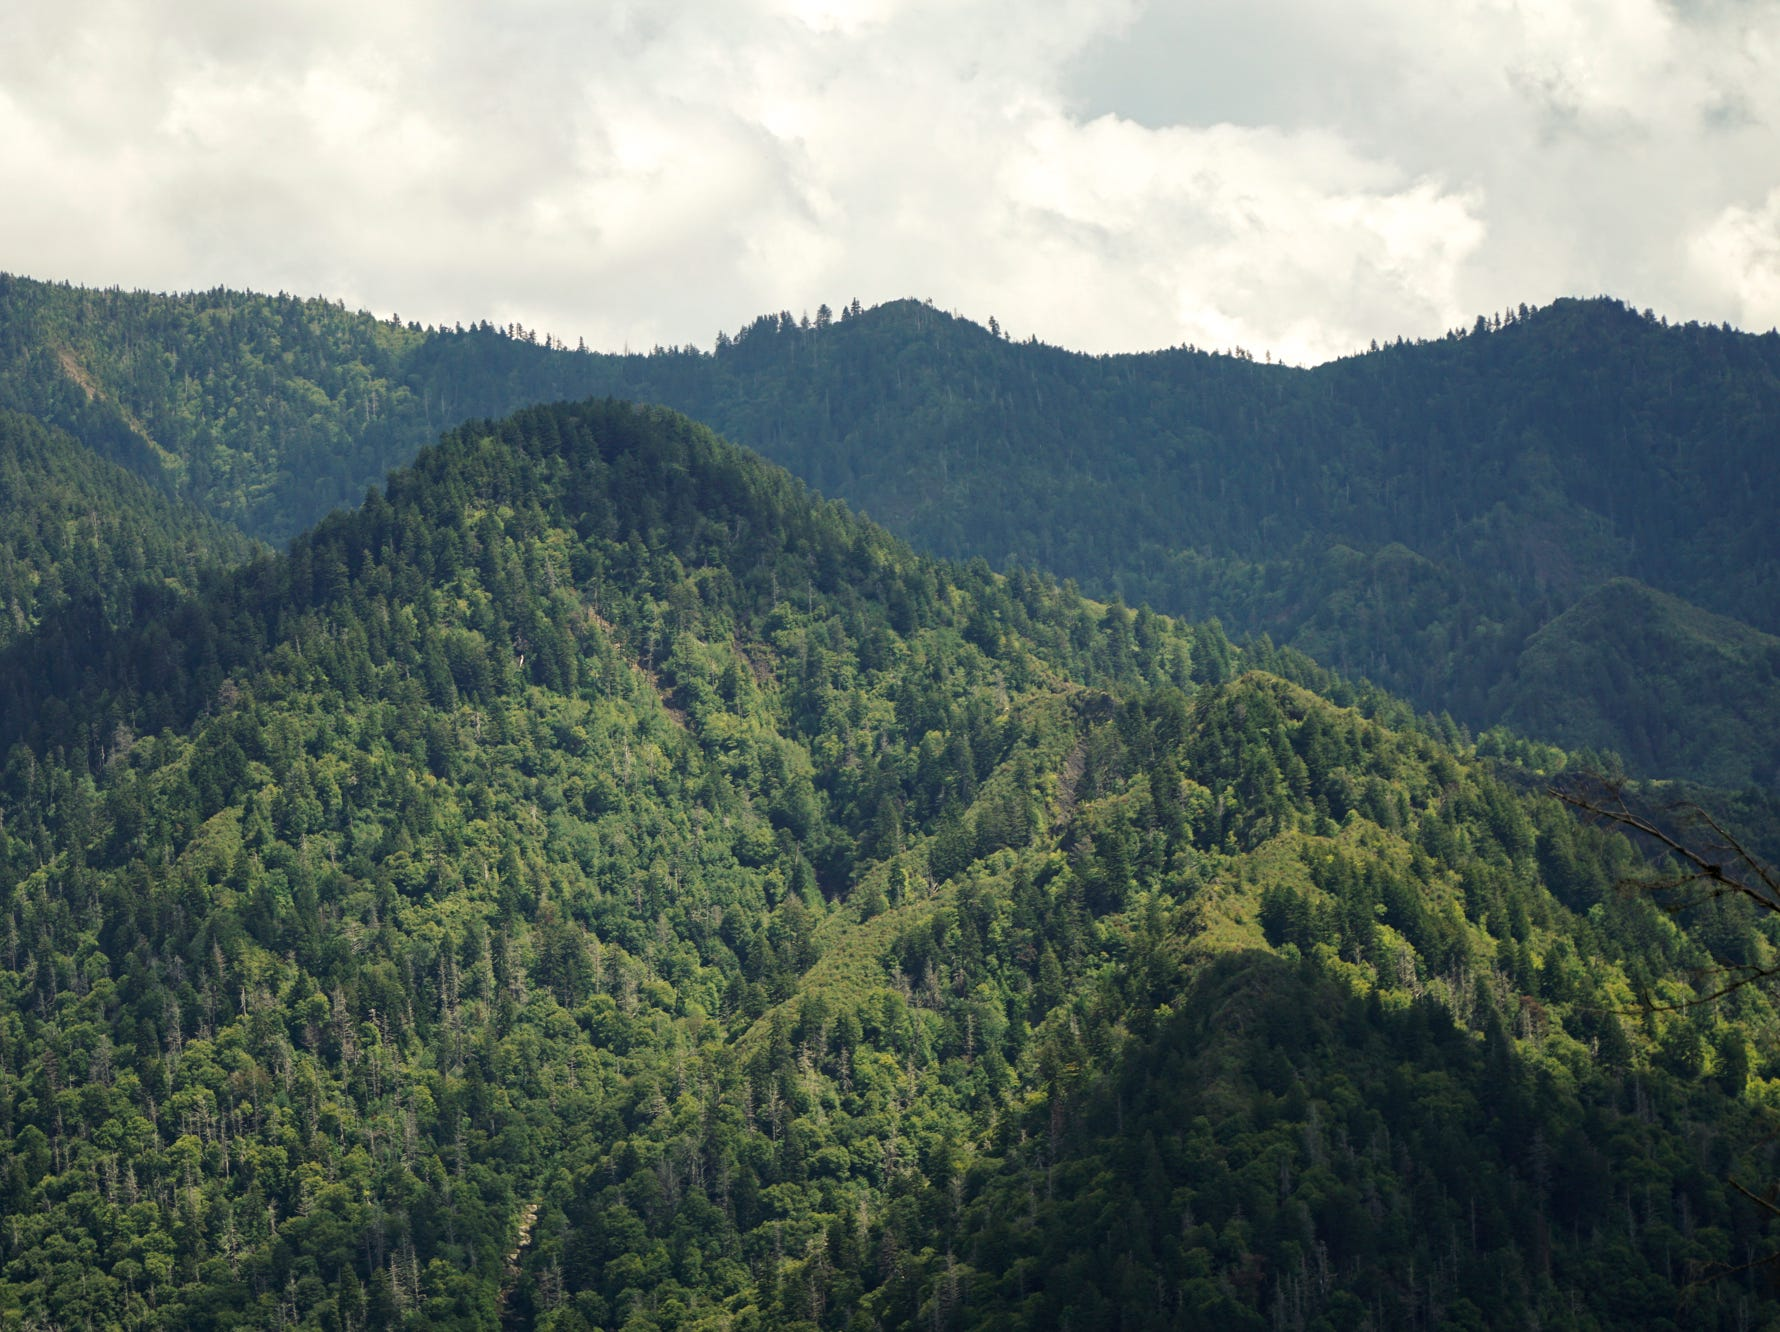 The Chimney Tops trail's new viewing platform offers a broad view of the surrounding ridges, but lacks the panoramic views of the now closed pinnacles.